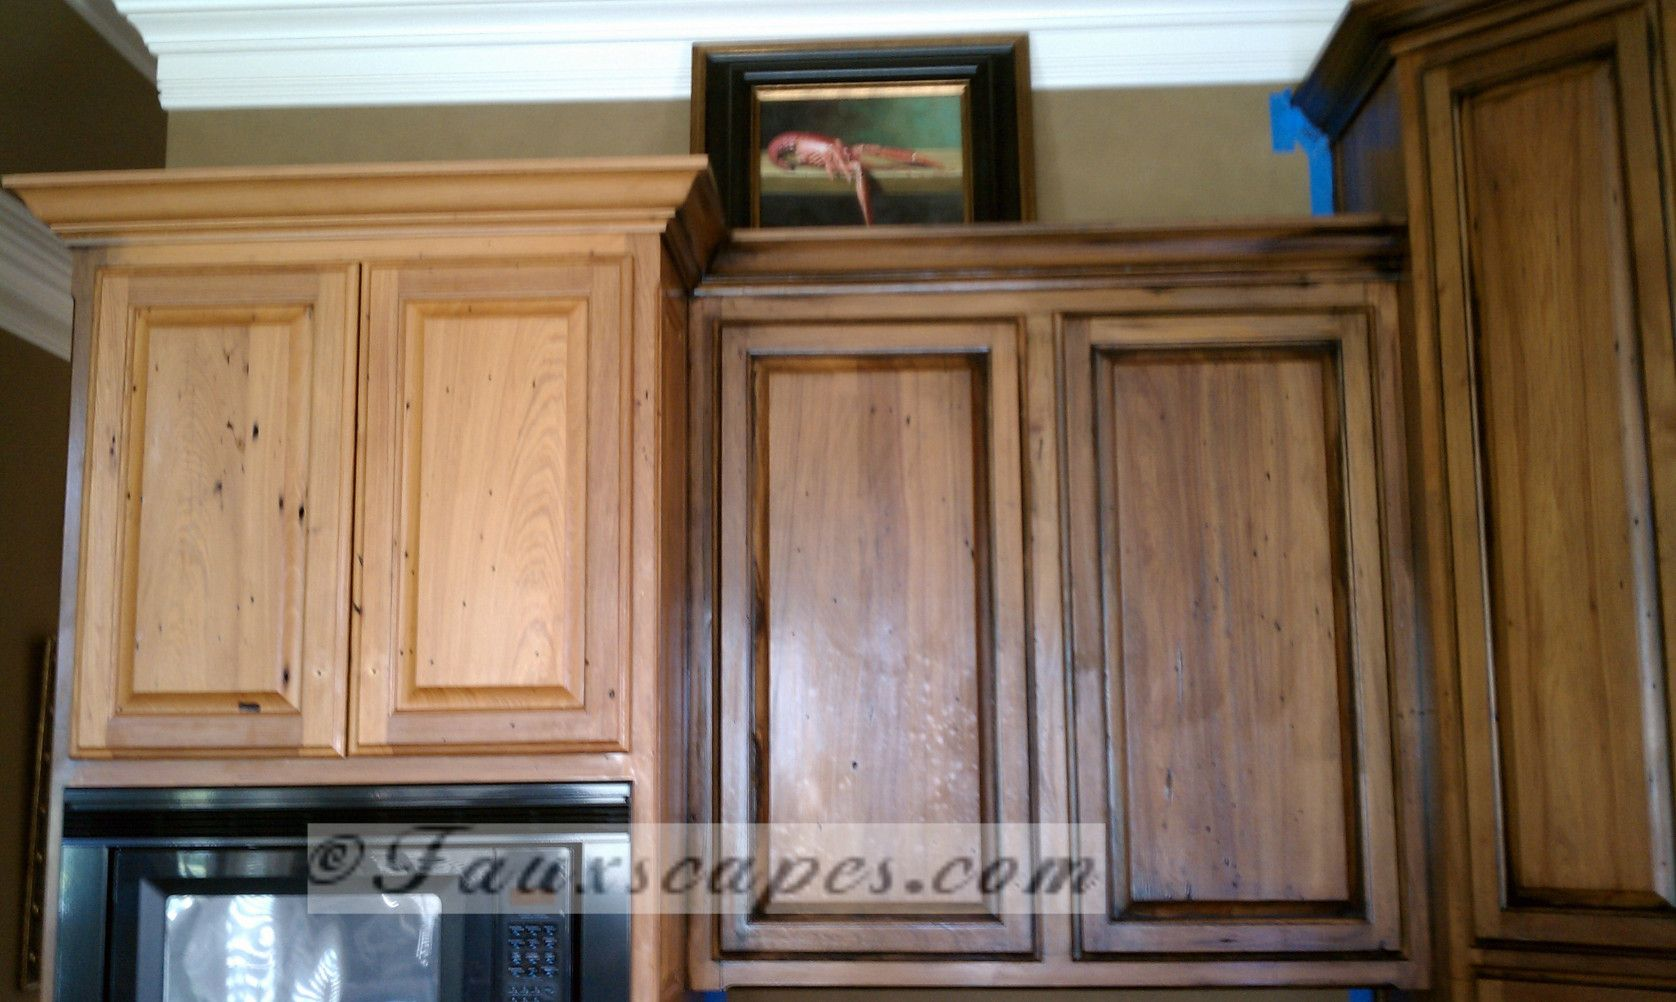 70 Glazing Oak Cabinets Before After Kitchen Nook Lighting Ideas Check More At Glazed Kitchen Cabinets Stained Kitchen Cabinets Restaining Kitchen Cabinets